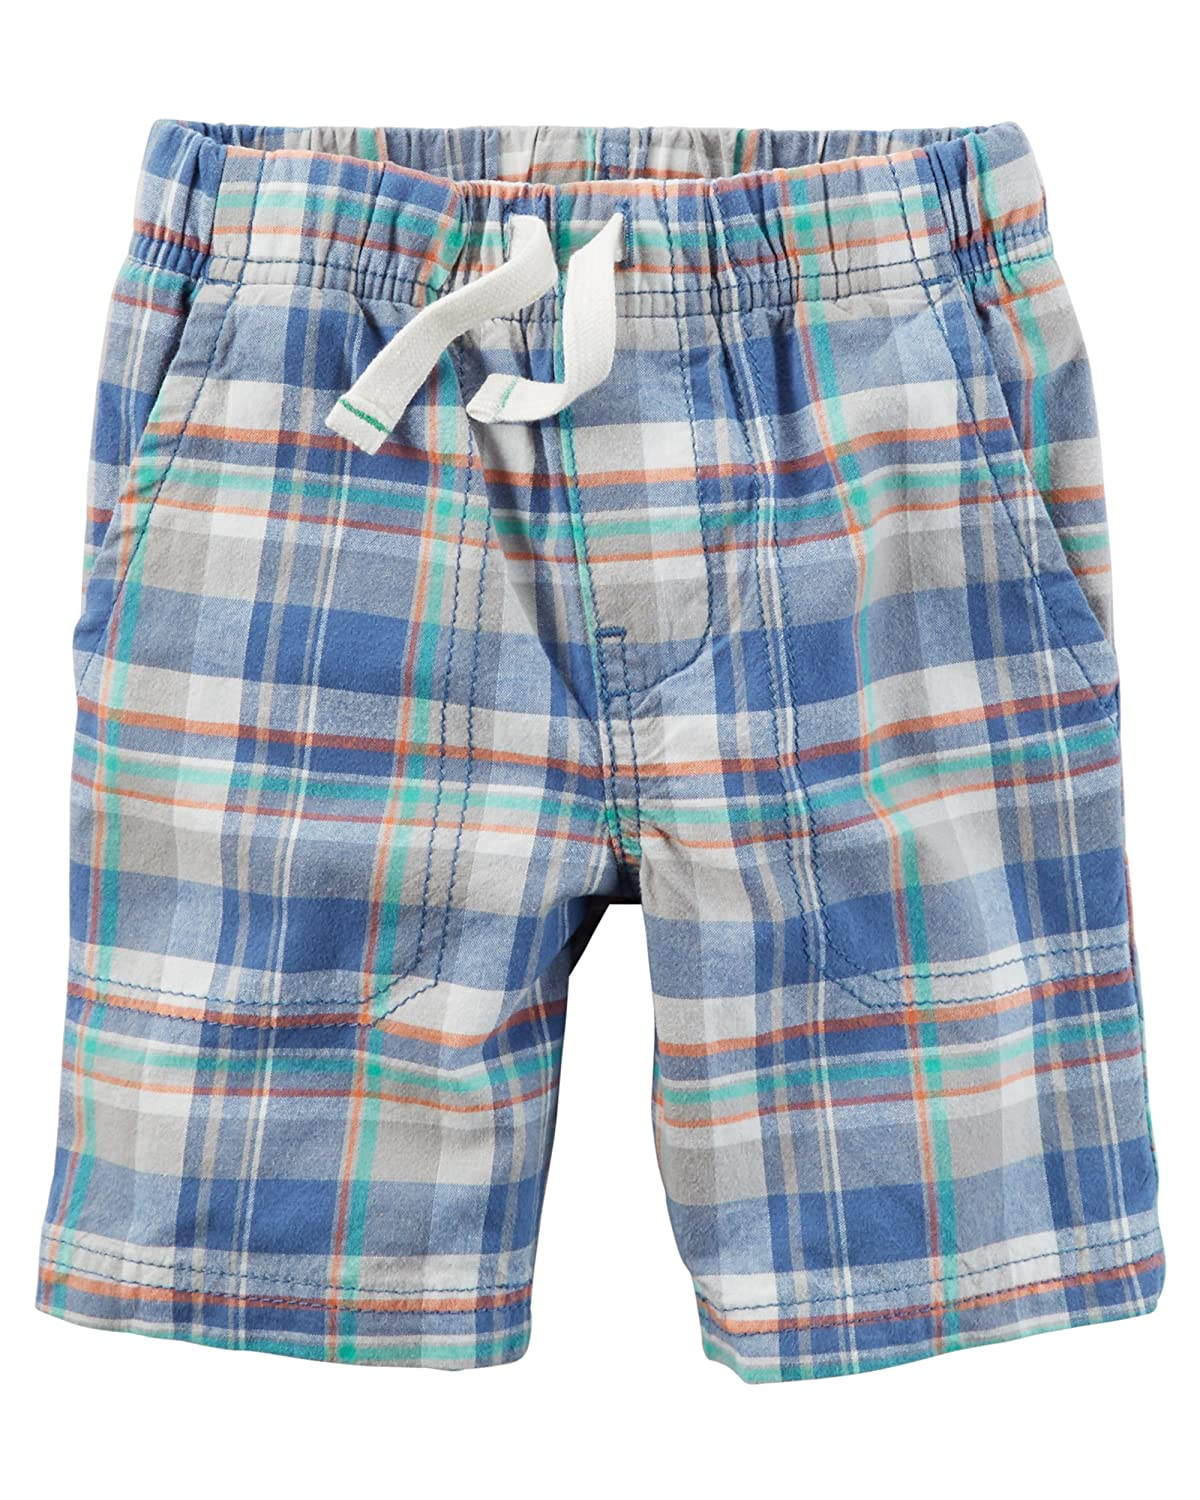 Carters Boys Blue Plaid Pull On Cotton Shorts 9 Months